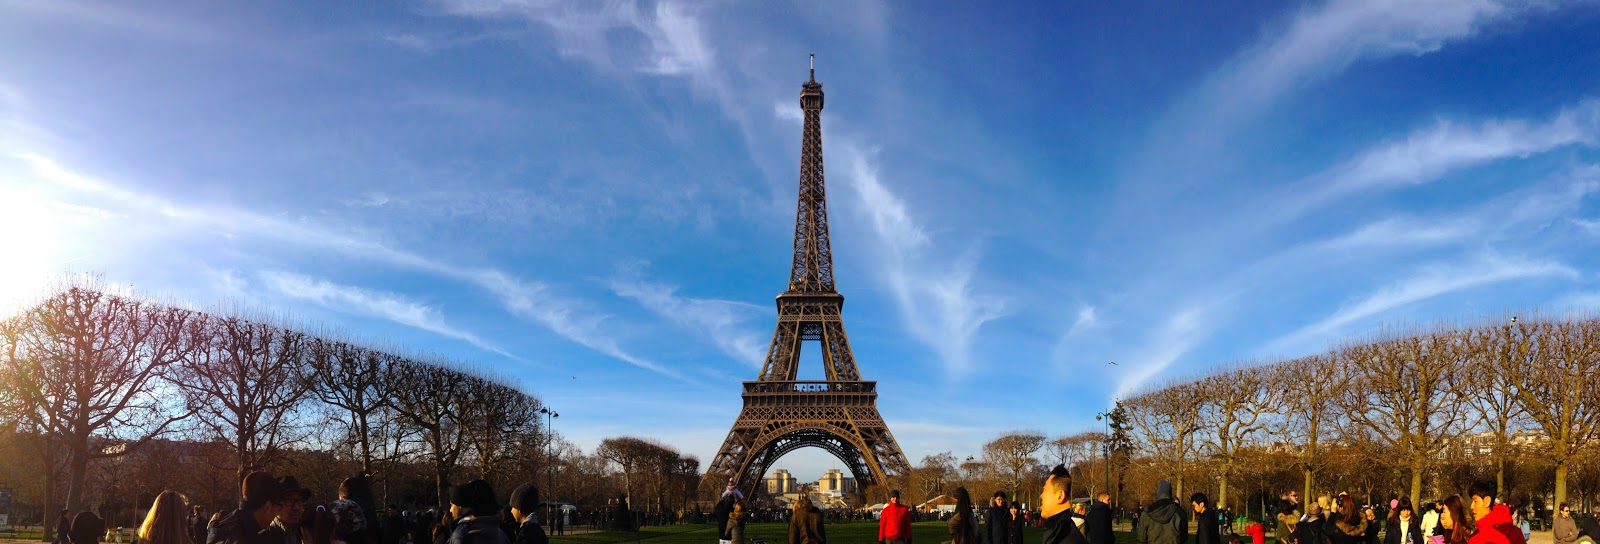 Jalan-Jalan di Paris - Eiffel Tower Panorama from Champ de Mars